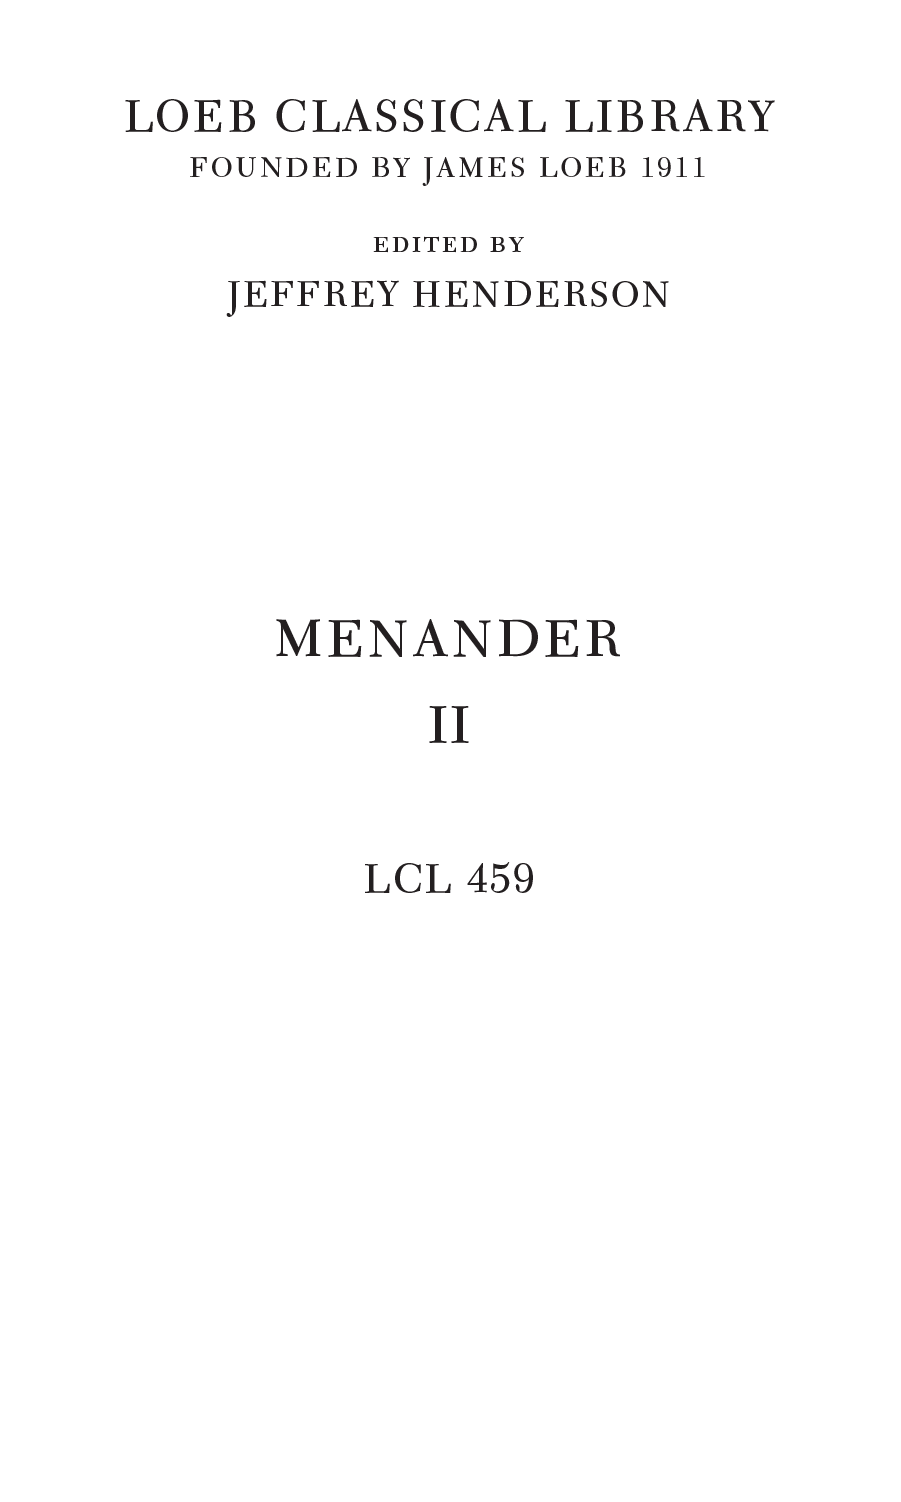 LOEB CLASSICAL LIBRARY FOUNDED BY JAMES LOEB 1911 EDITED BY JEFFREY HENDERSON MENANDER II LCL 459